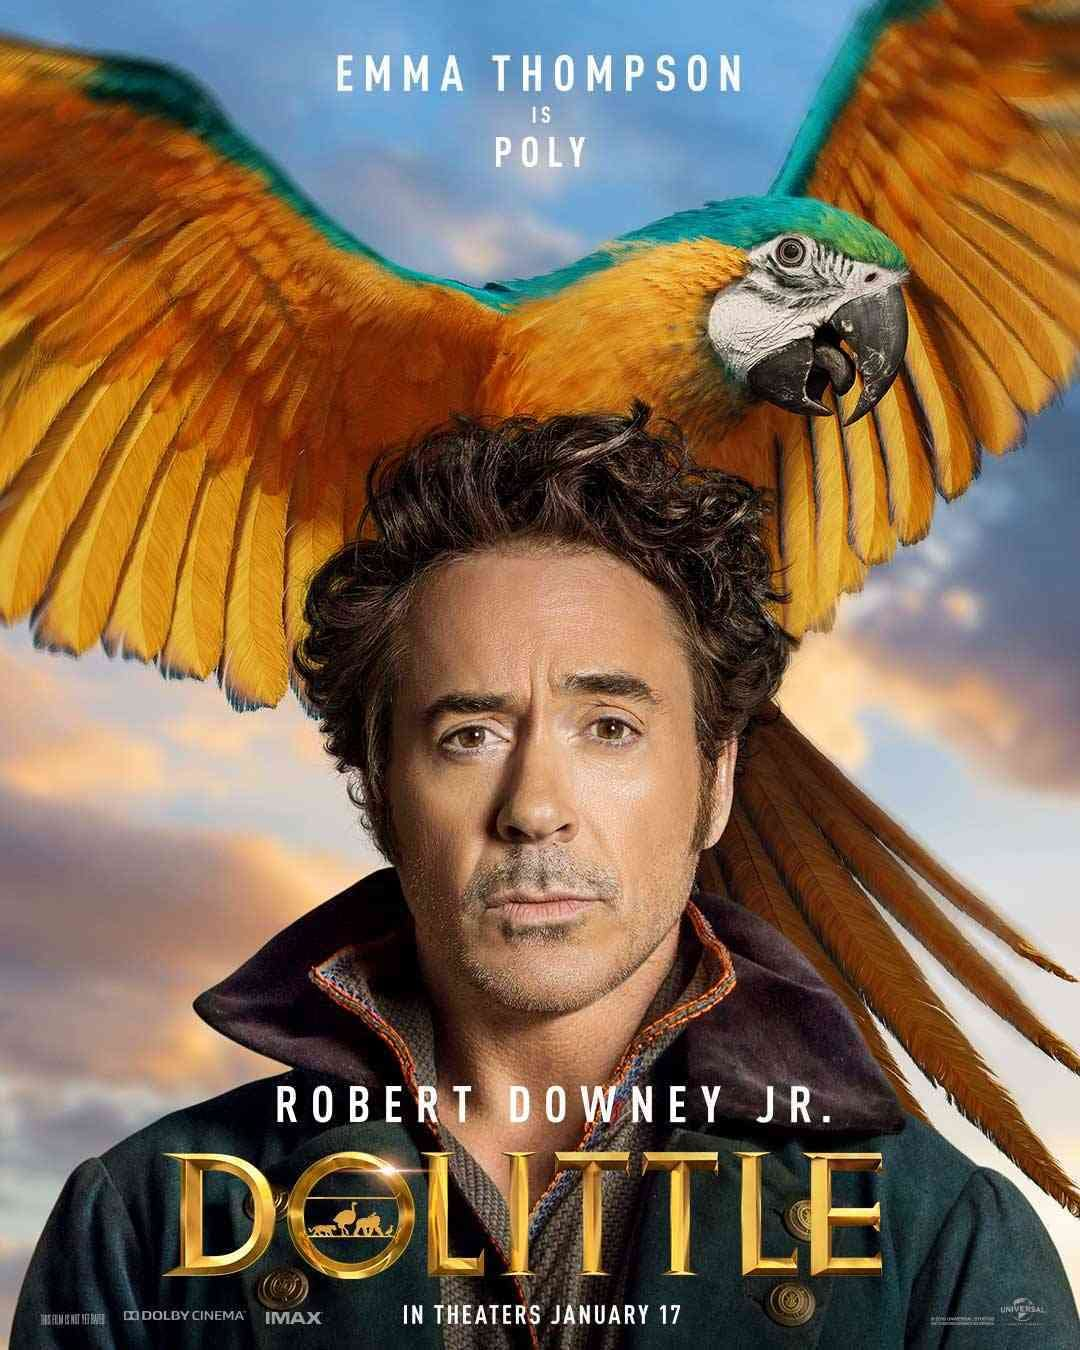 'Dolittle': Eight Character Posters Revealed For Each Character